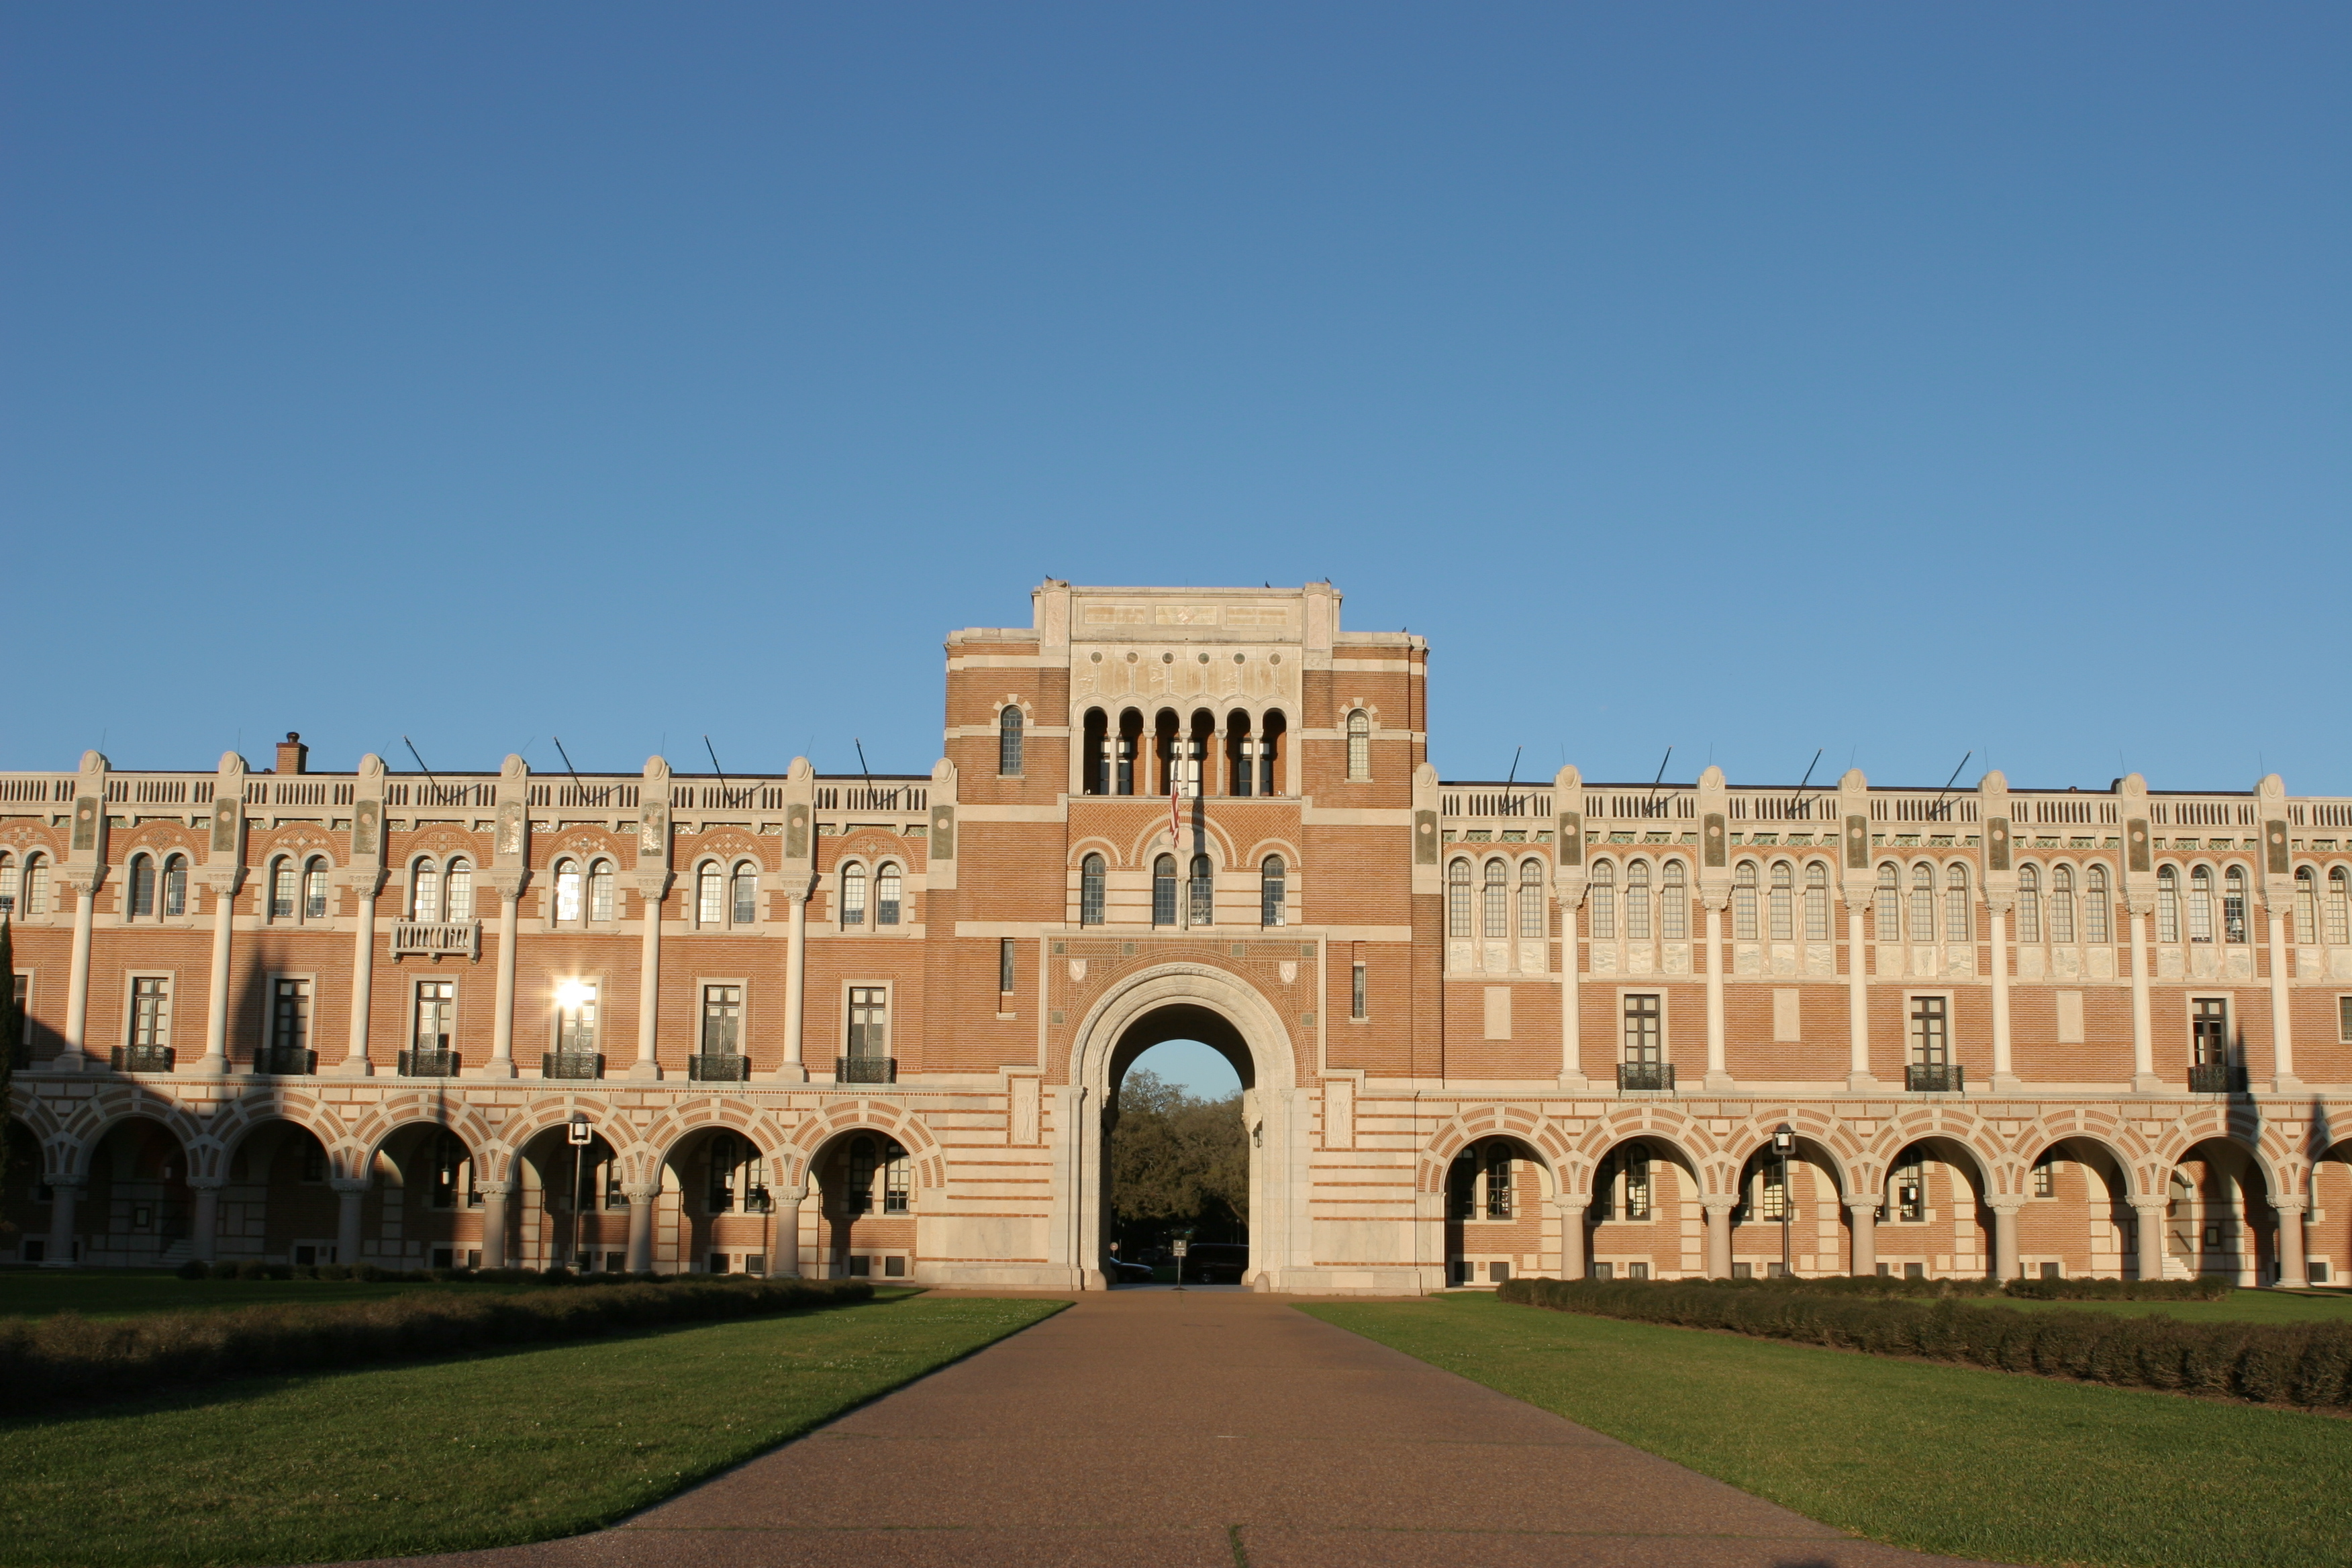 Rice University is a prestigious institution in Houston, Texas. Shutterstock image via user cheng